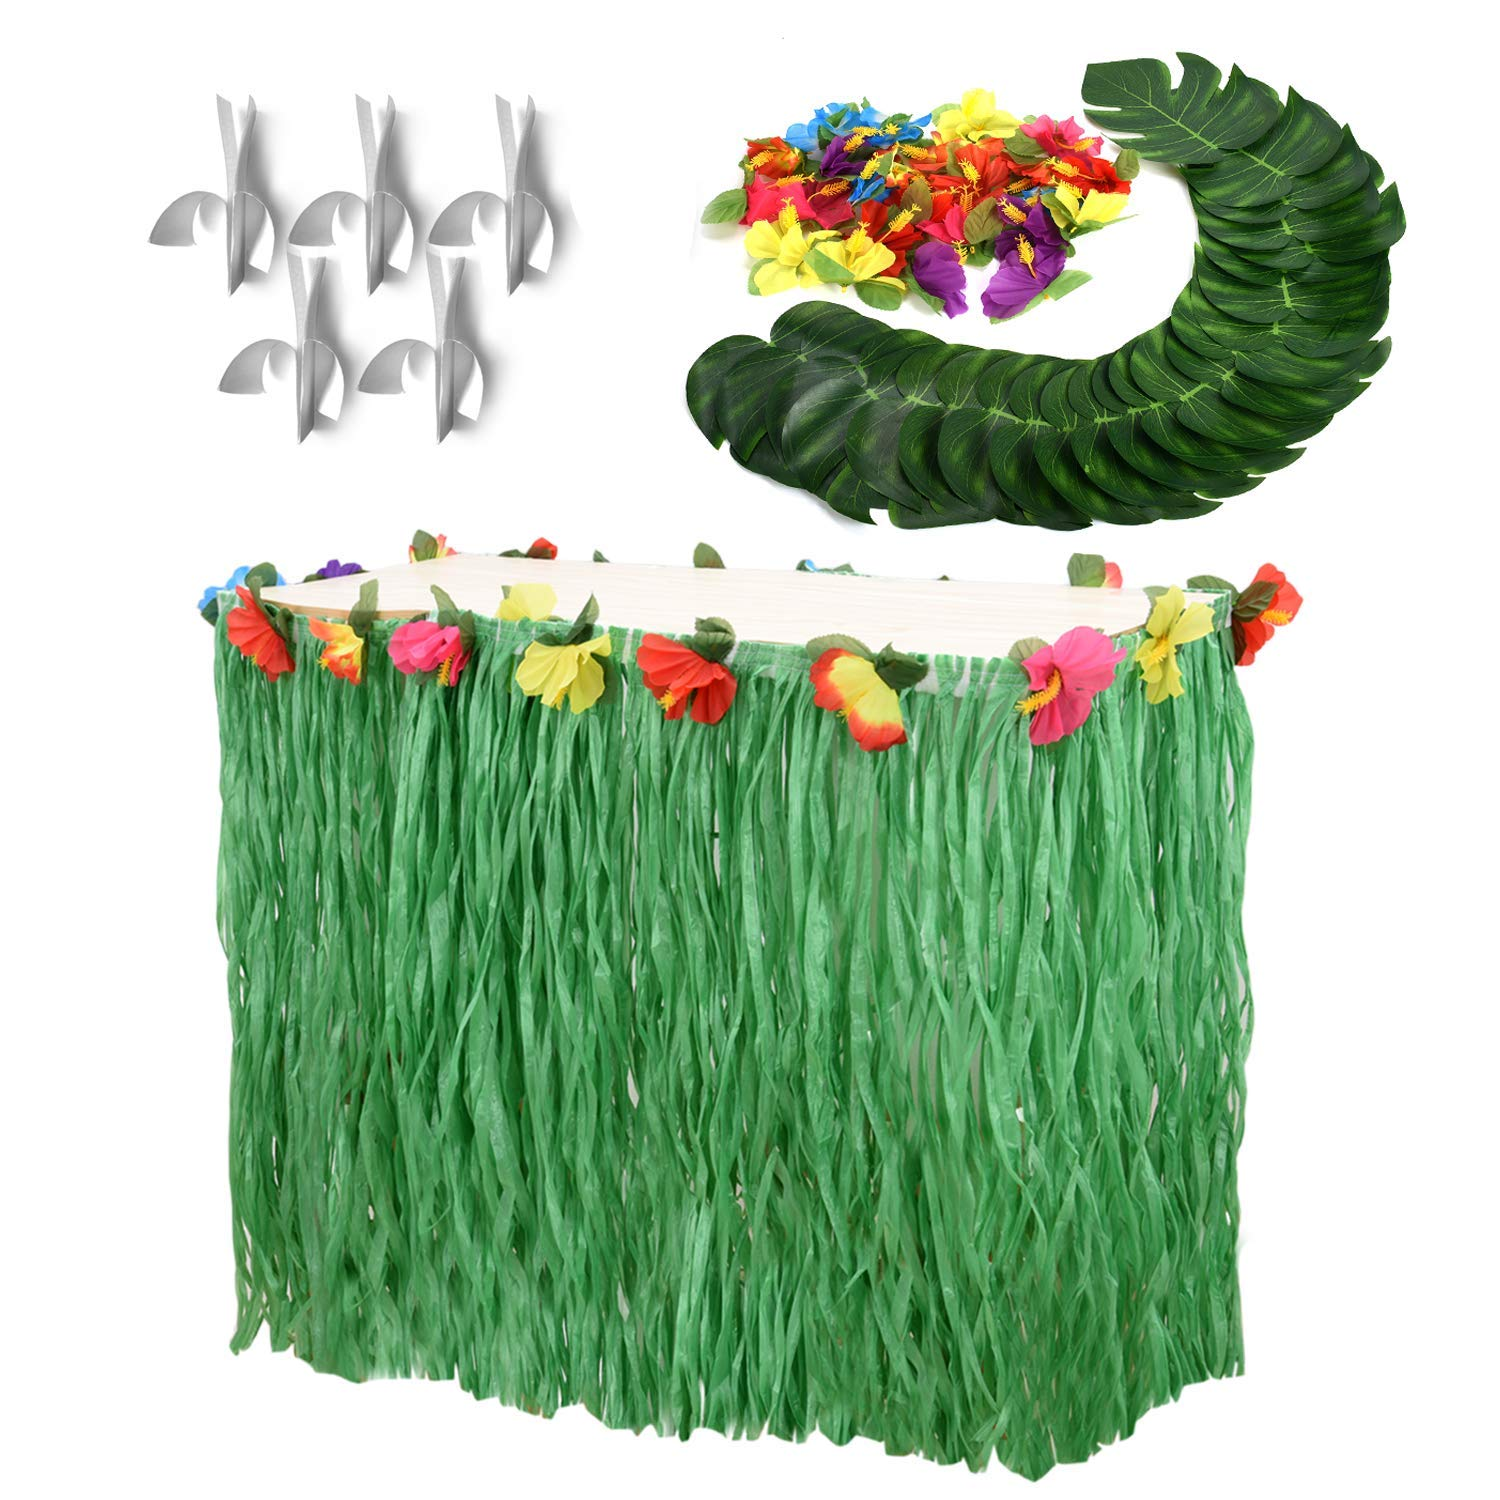 Moana Party Supplies Set-1 Pack Grass Table Skirt 9ft,24 Pcs Tropical Faux Palm Leaves,24 Pcs Hibiscus Flowers with 5Pcs Adhesive Hook & Loop for Hula, Luau, Maui, Hawaiian, Moana Themed Party by CWLAKON